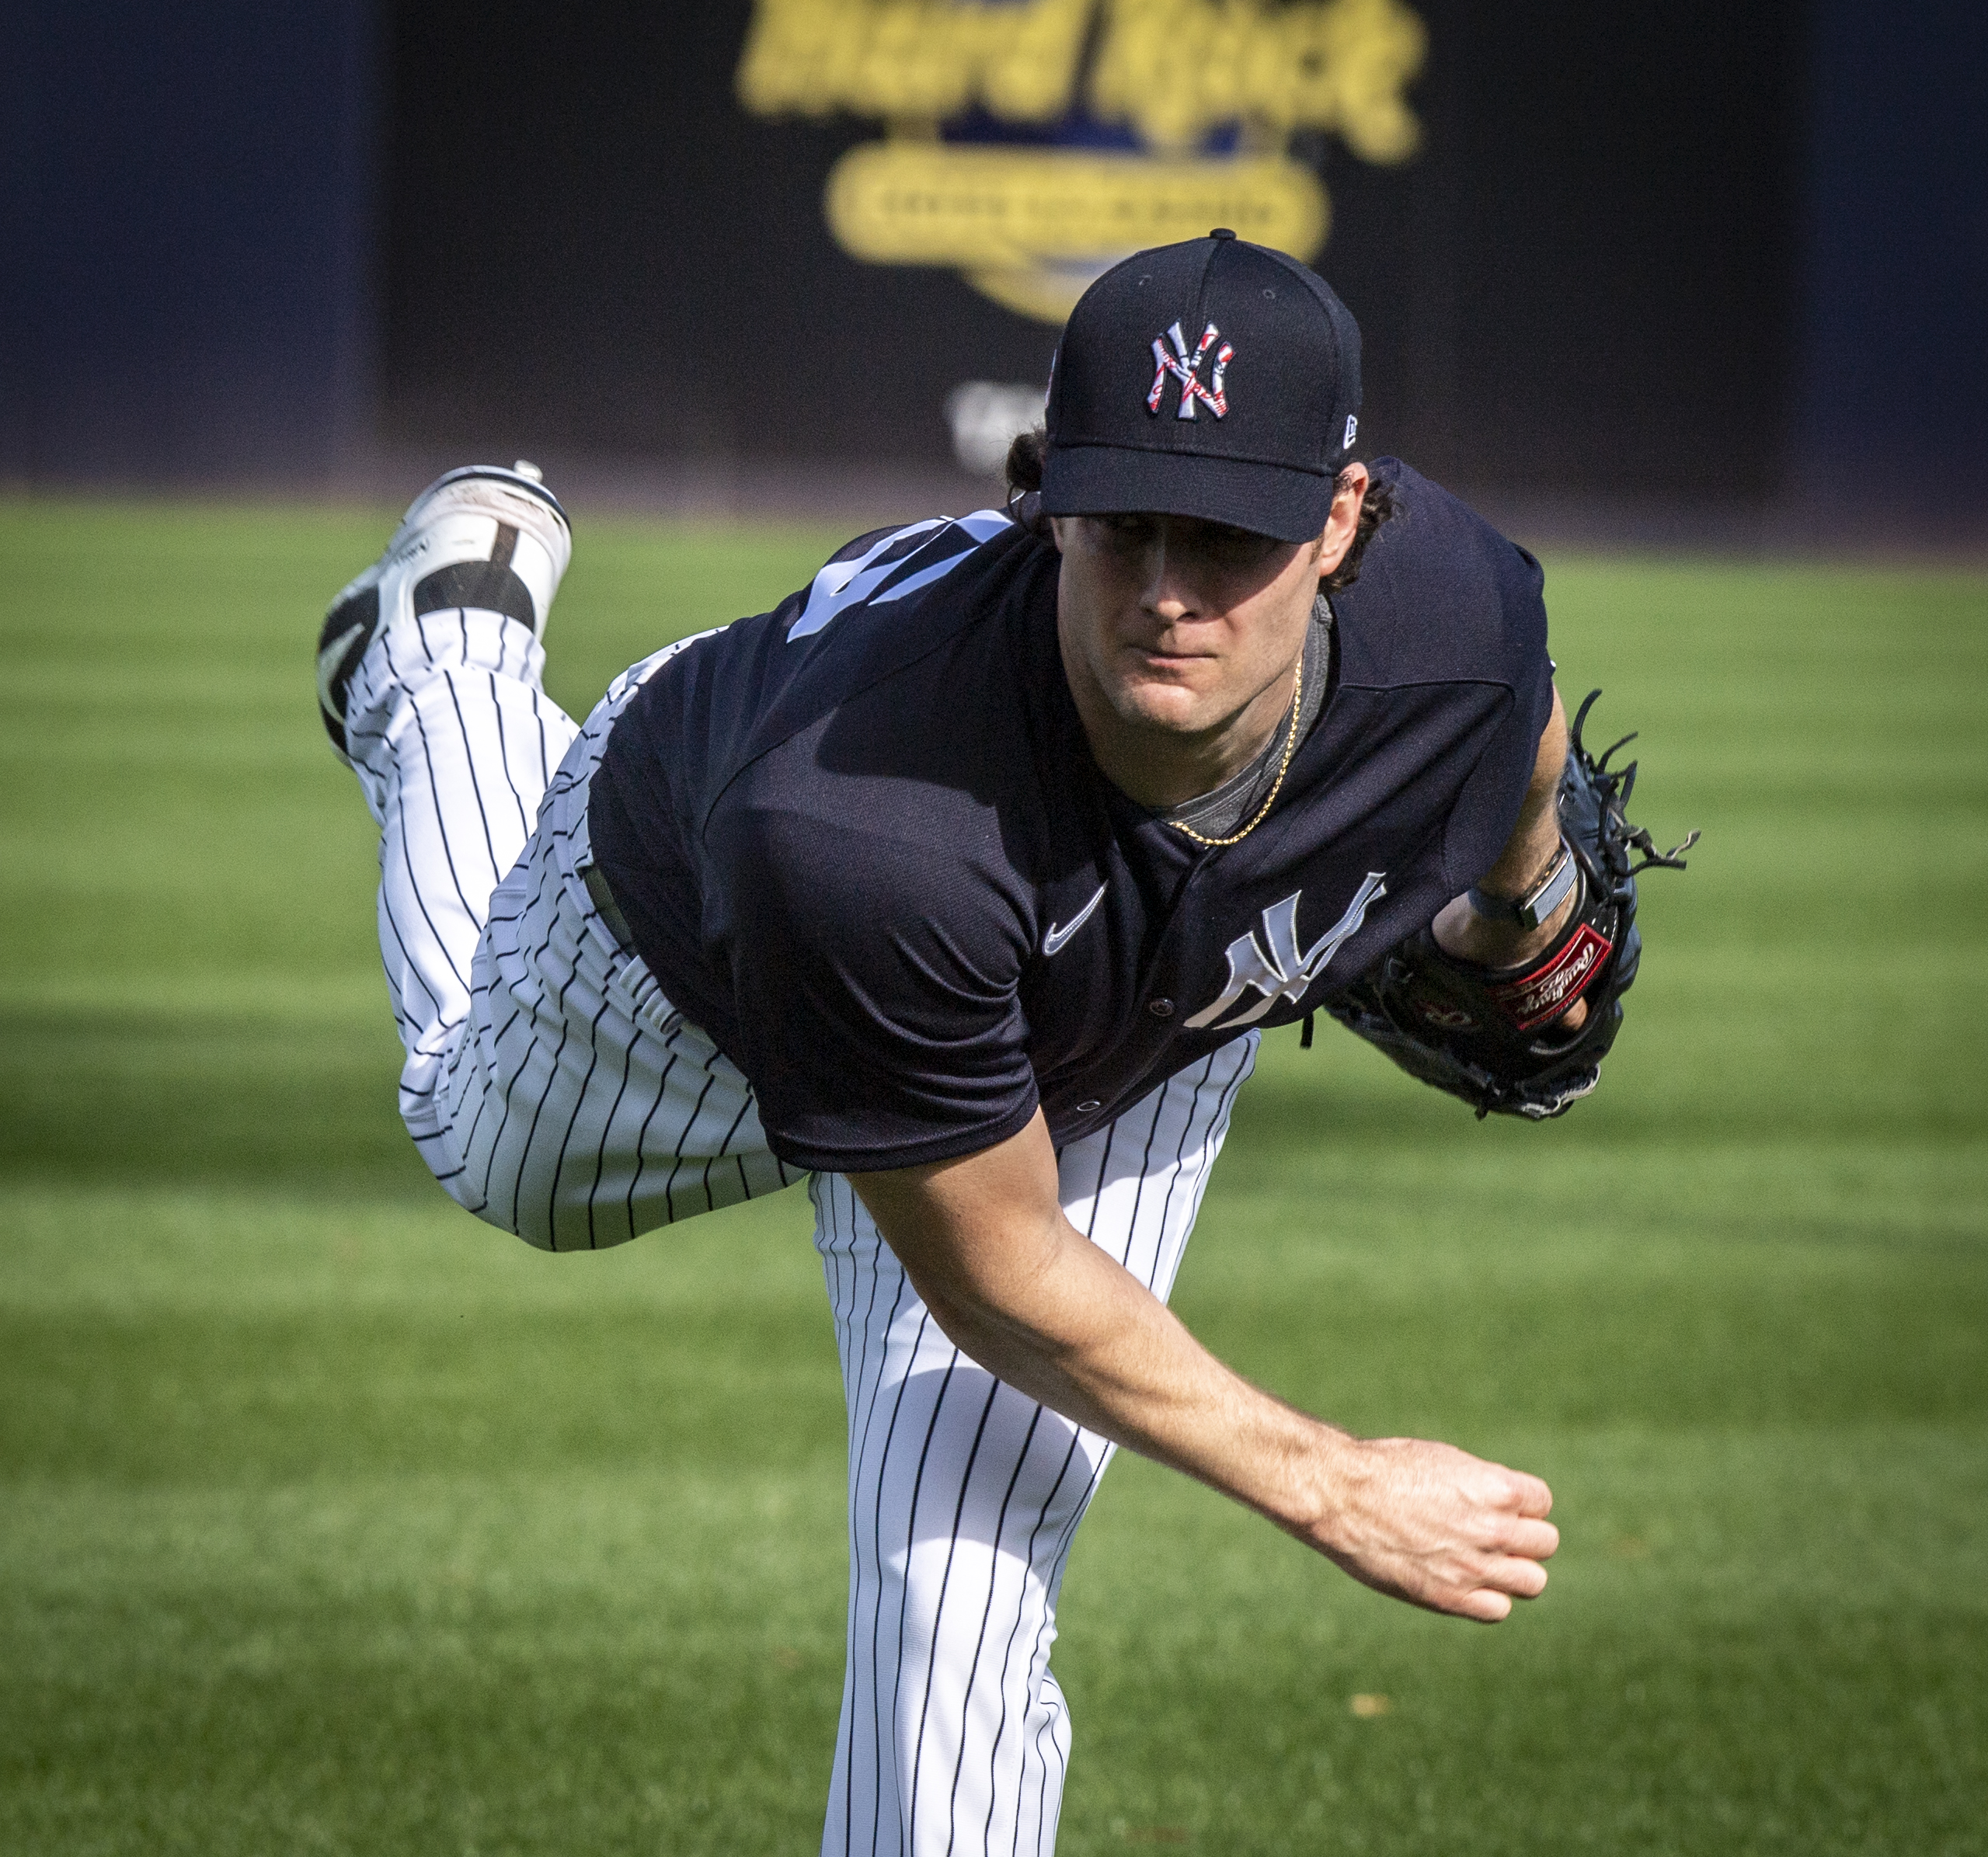 New York Yankees pitcher Gerrit Cole at spring training in 2020